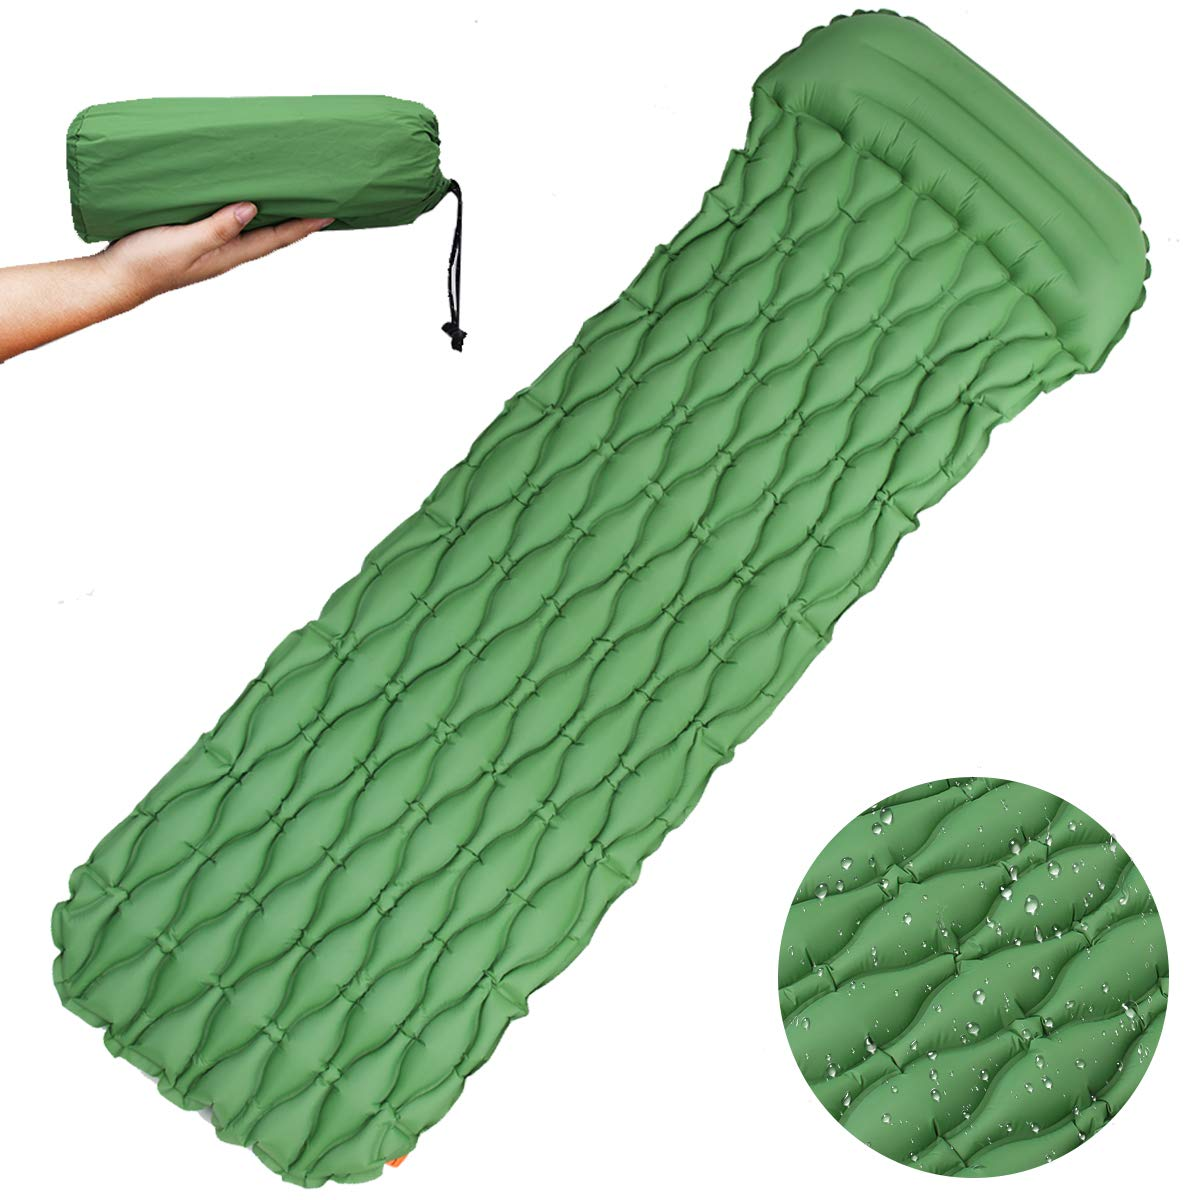 Hiking Compact Lightweight Camp Mat for Camping Durable Backpacking No Air Pumps Needed Air Mattress with Pillow couldcot CLOUDCLOT Self Inflating Sleeping Pad Easy Inflation Camping Mat